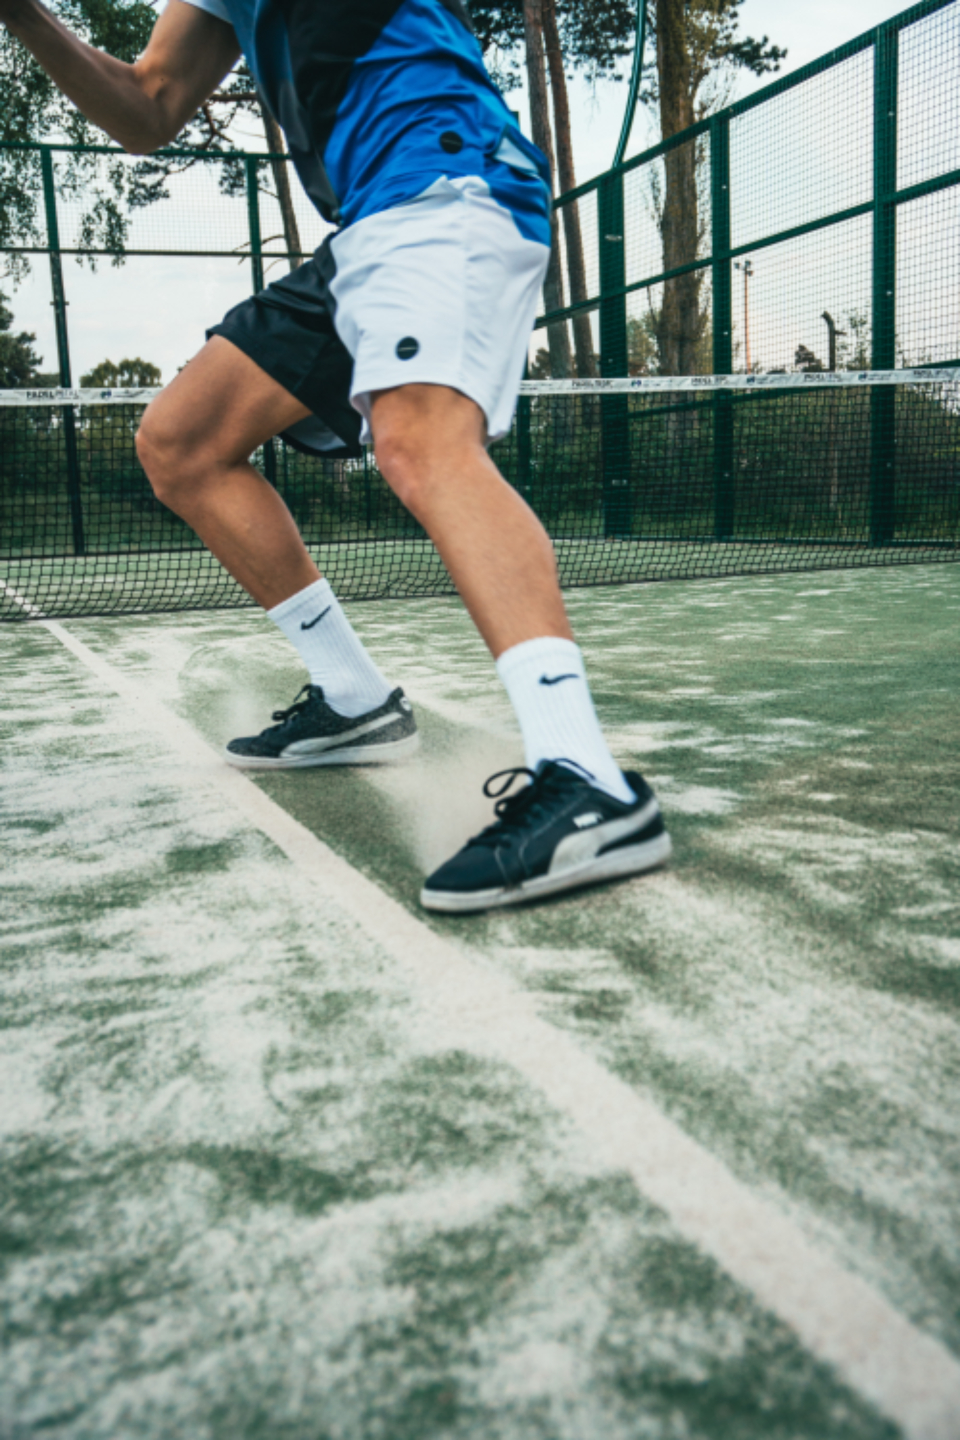 tennis player action